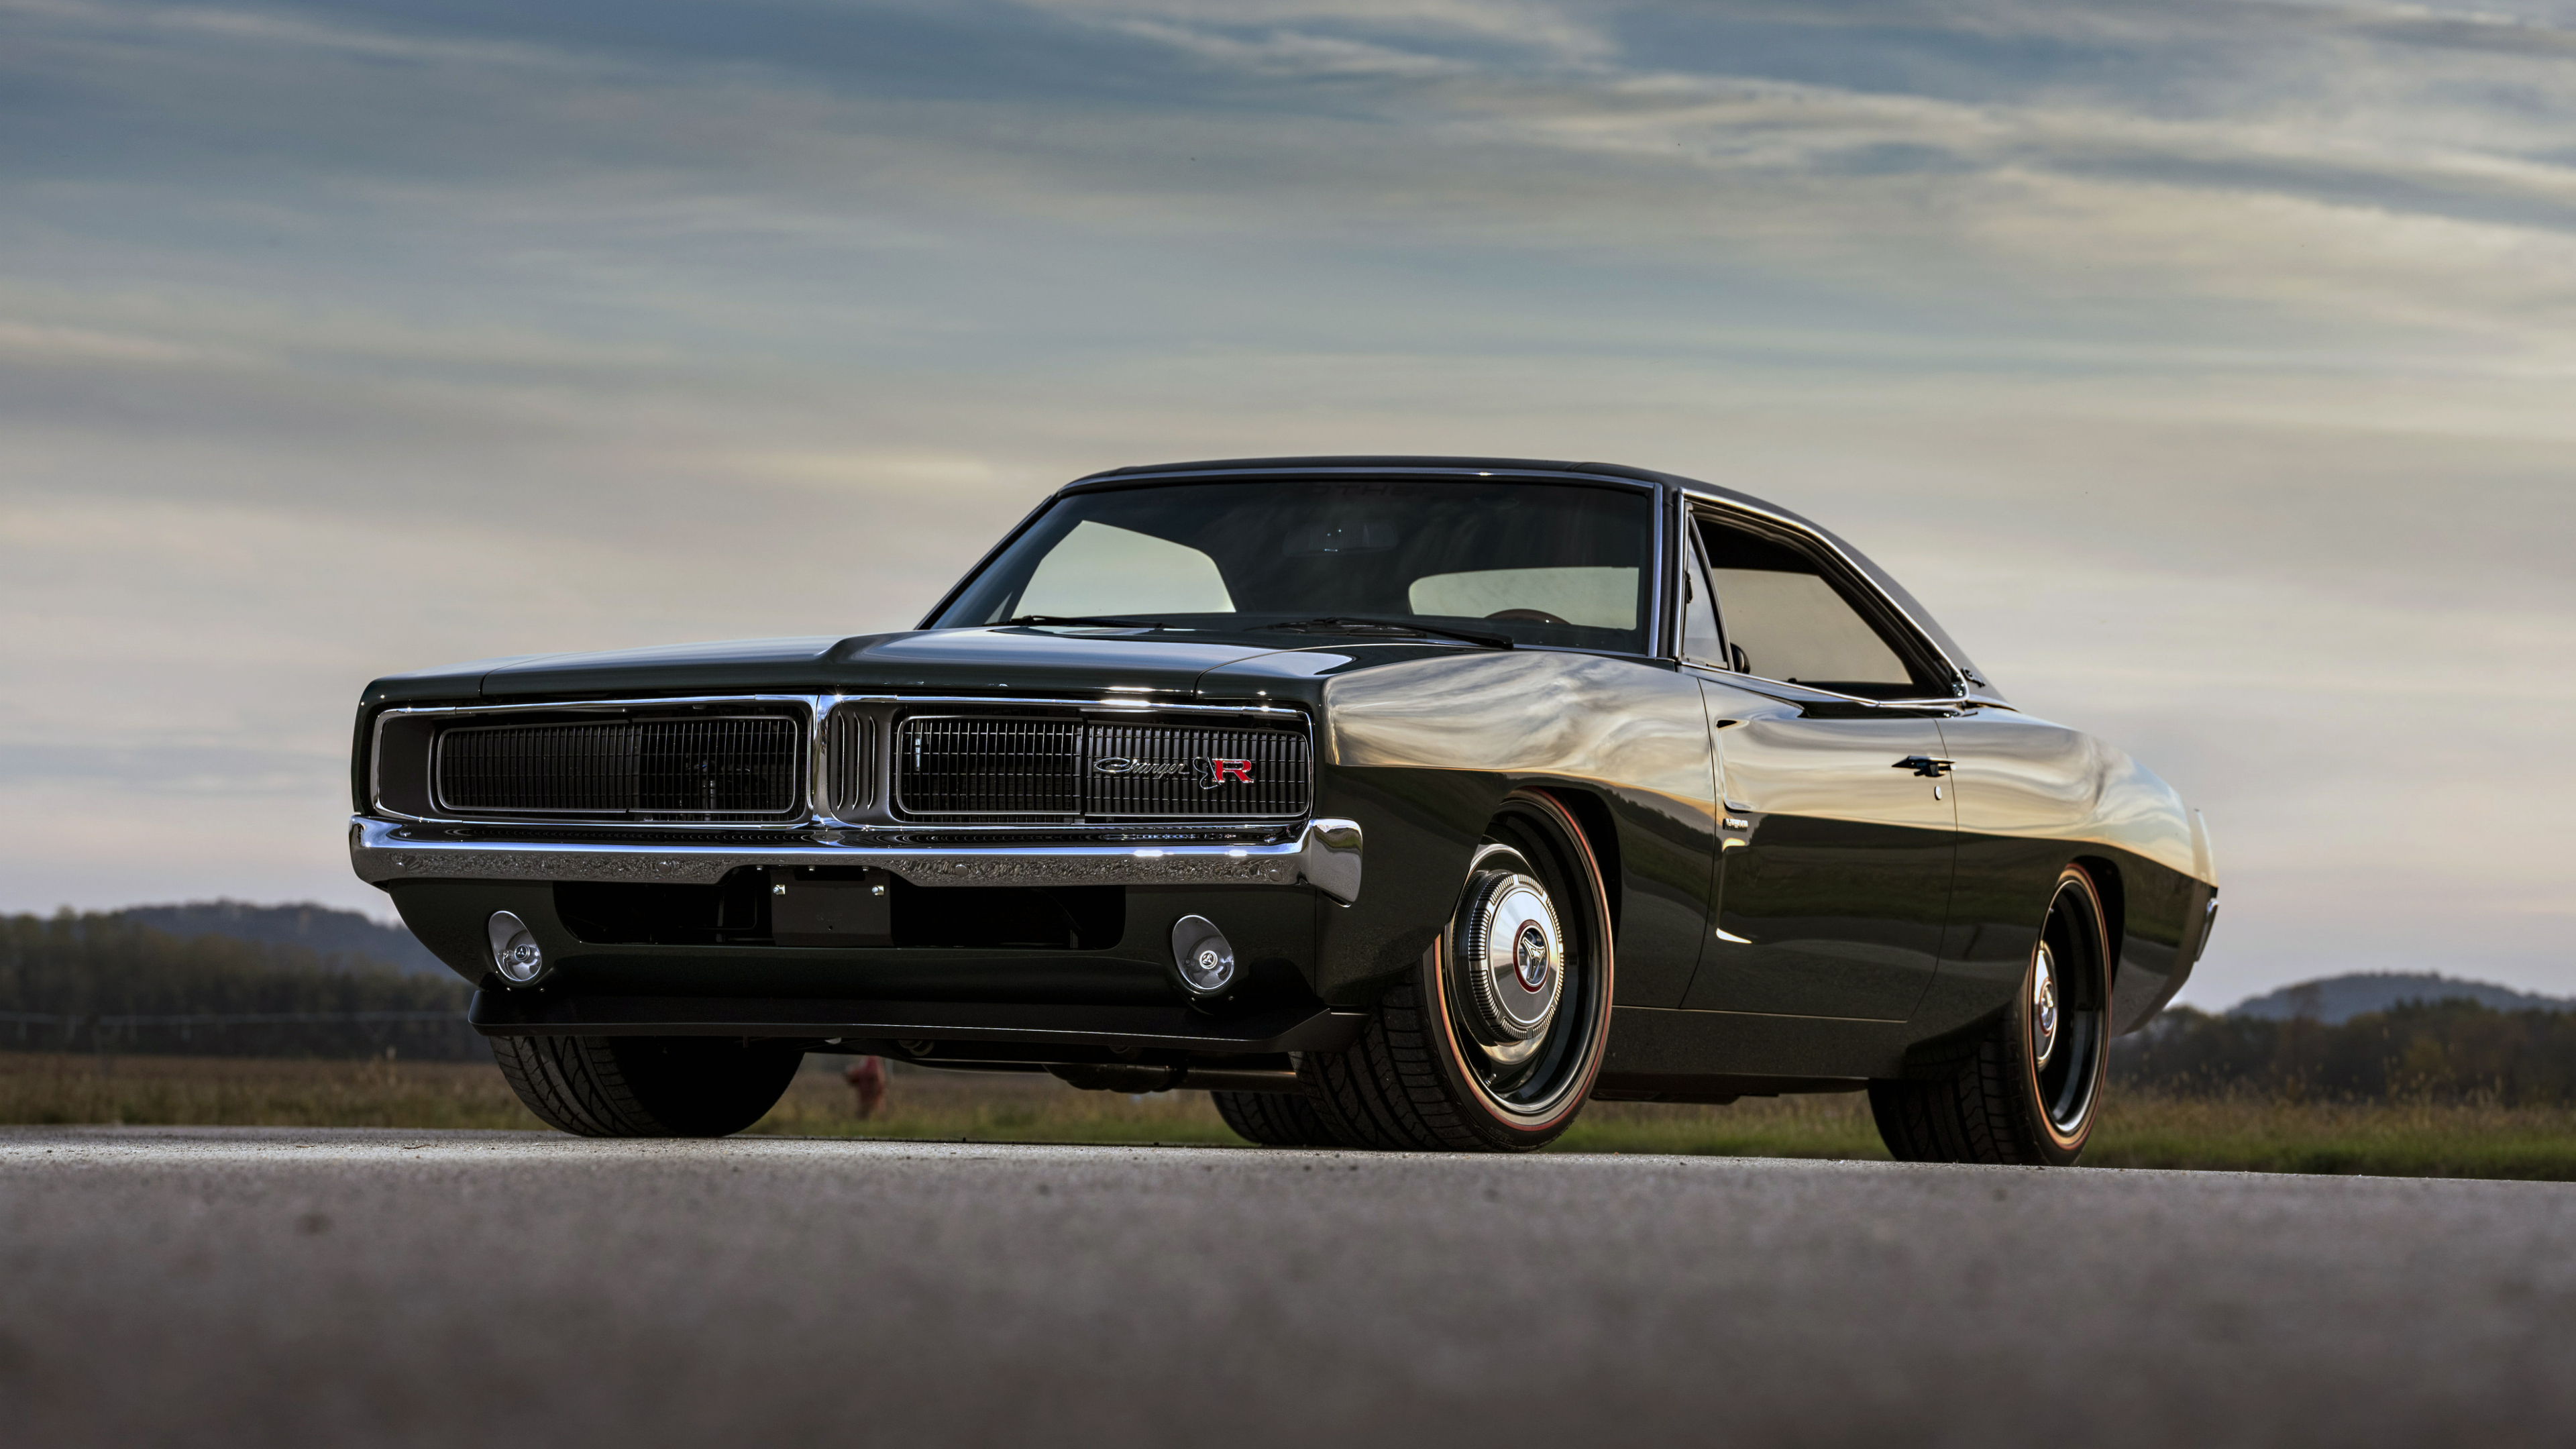 3840x2160 1969 ringbrothers dodge charger defector front - Dodge car 4k wallpaper ...